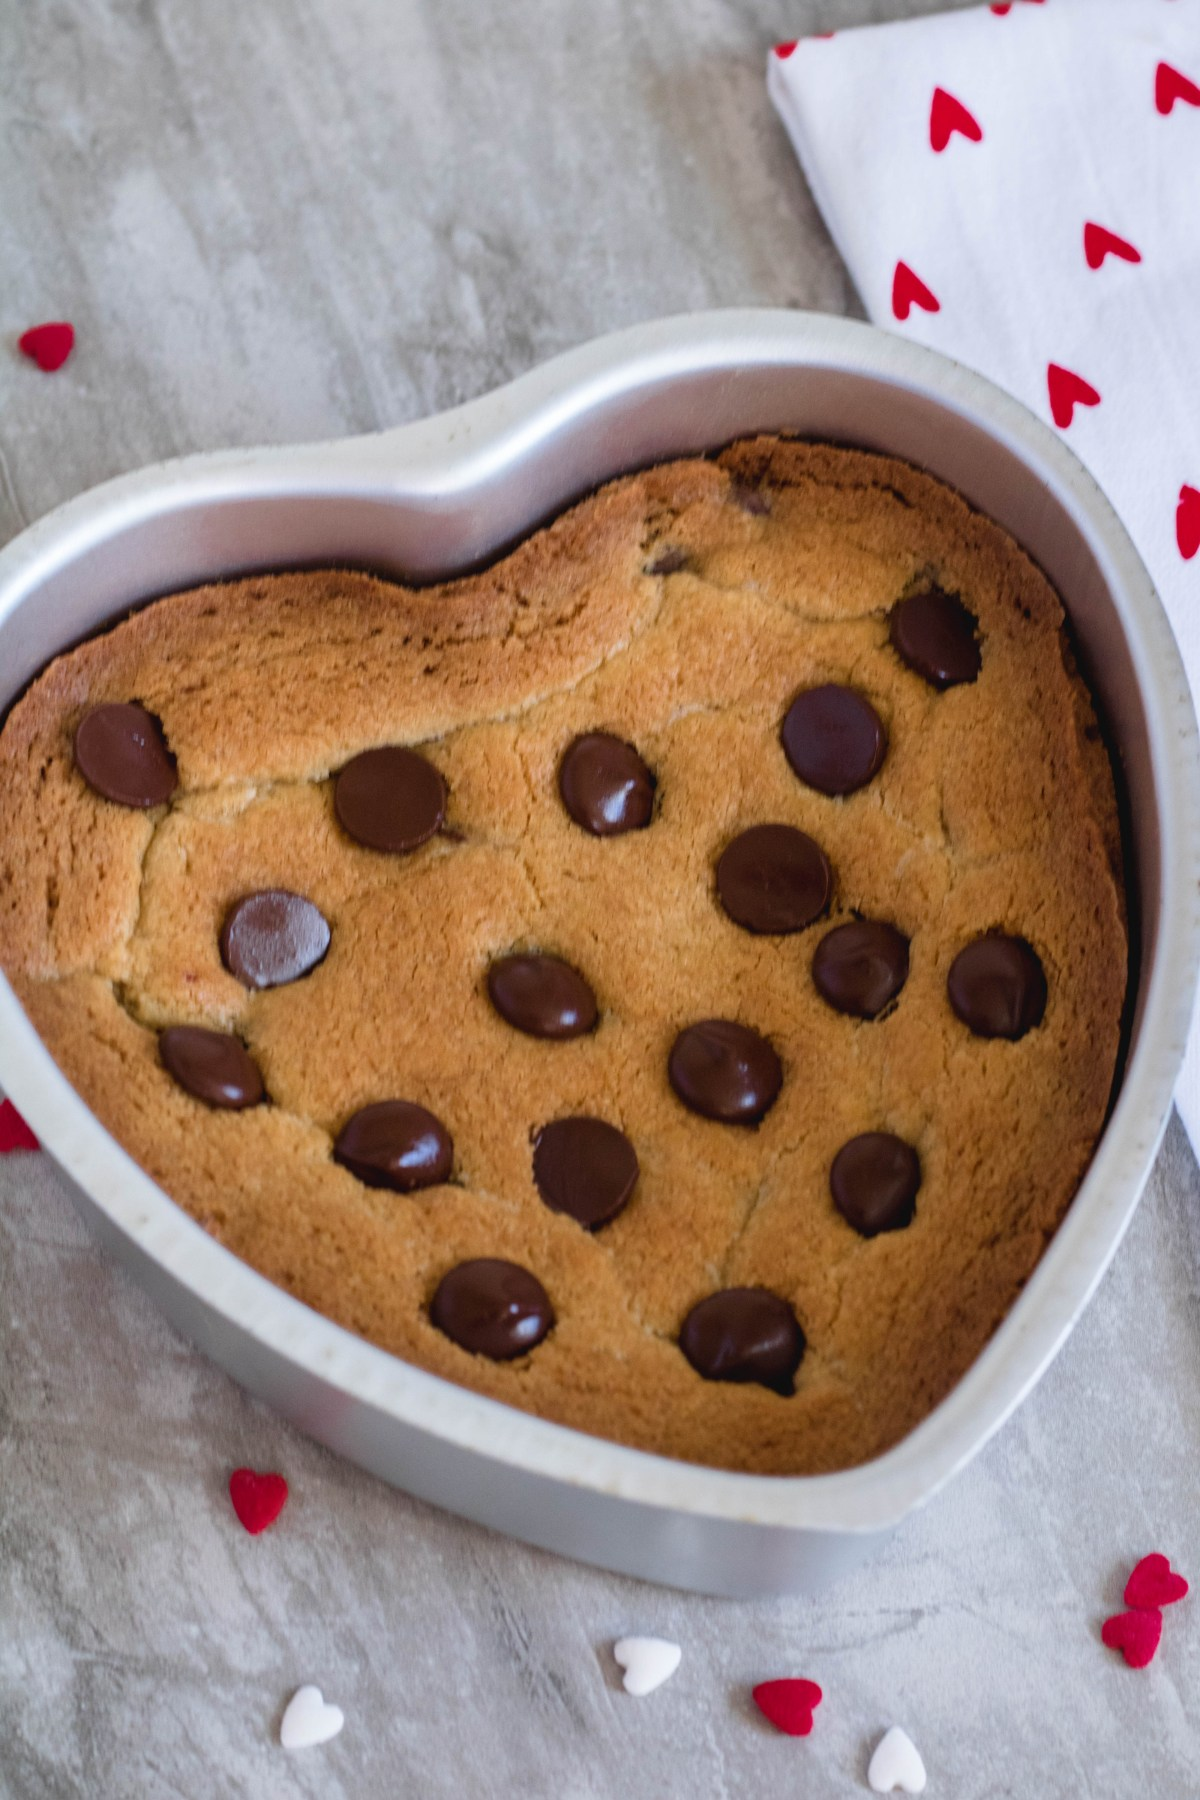 baked cookie cake for valentine's day